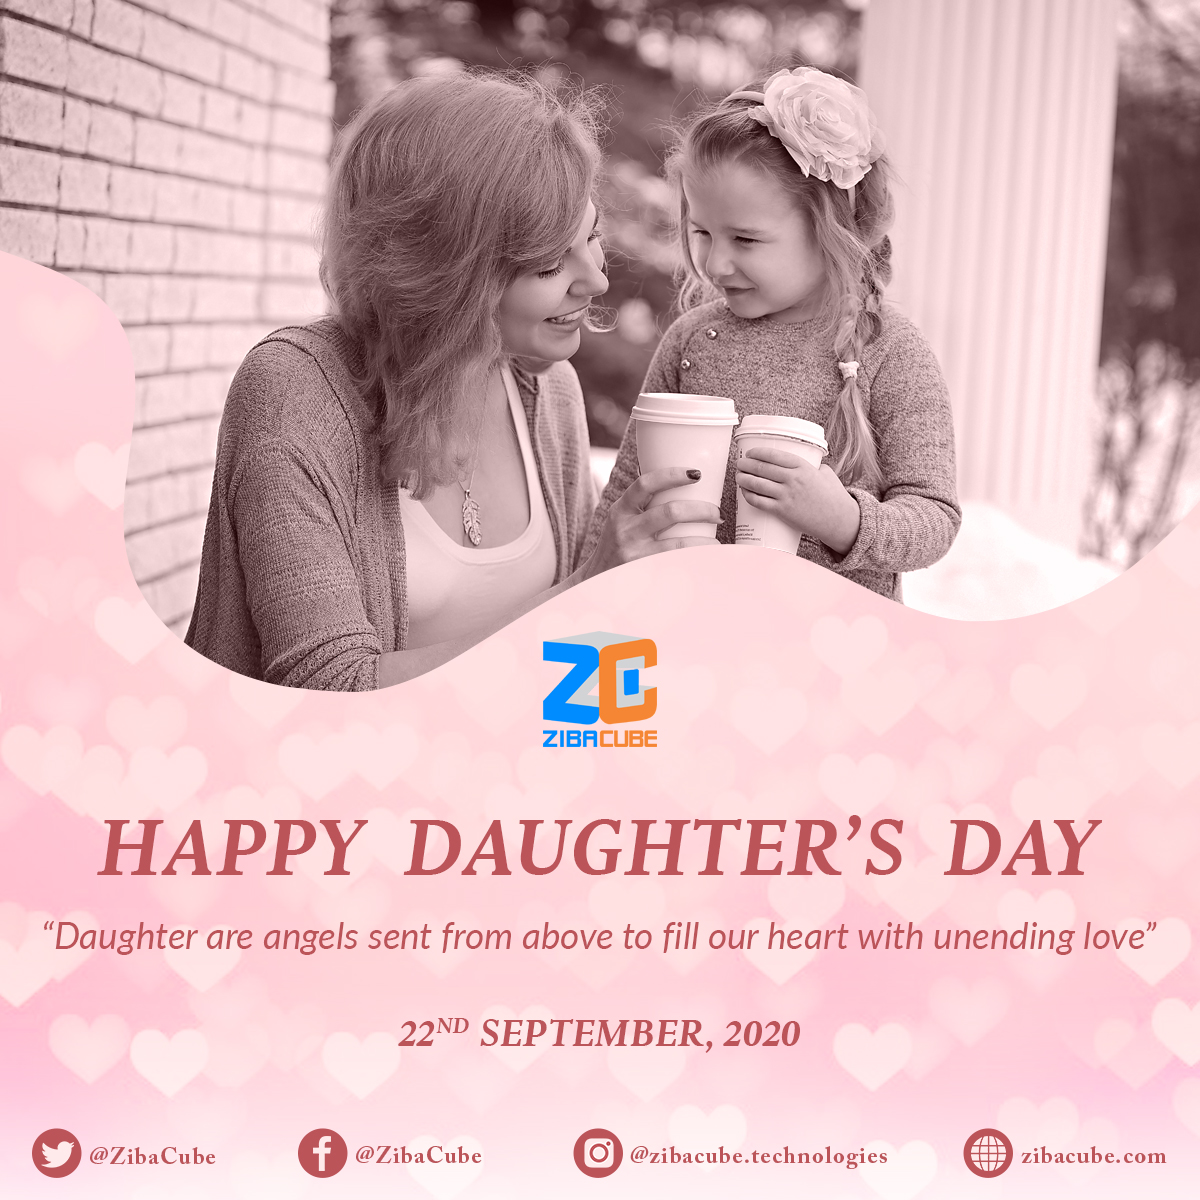 👨👧👧#Daughters are the blooming flowers of their parents. These delicate little, mischievous troublemakers are the center of their parent's world💕  #DaughtersDay #HappyDaughtersDay #DaughterOfTheKing #FatherDaughterBond #MomDaughterTime #LoveGirls #LoveUrDaughters #WeAreZibacubers